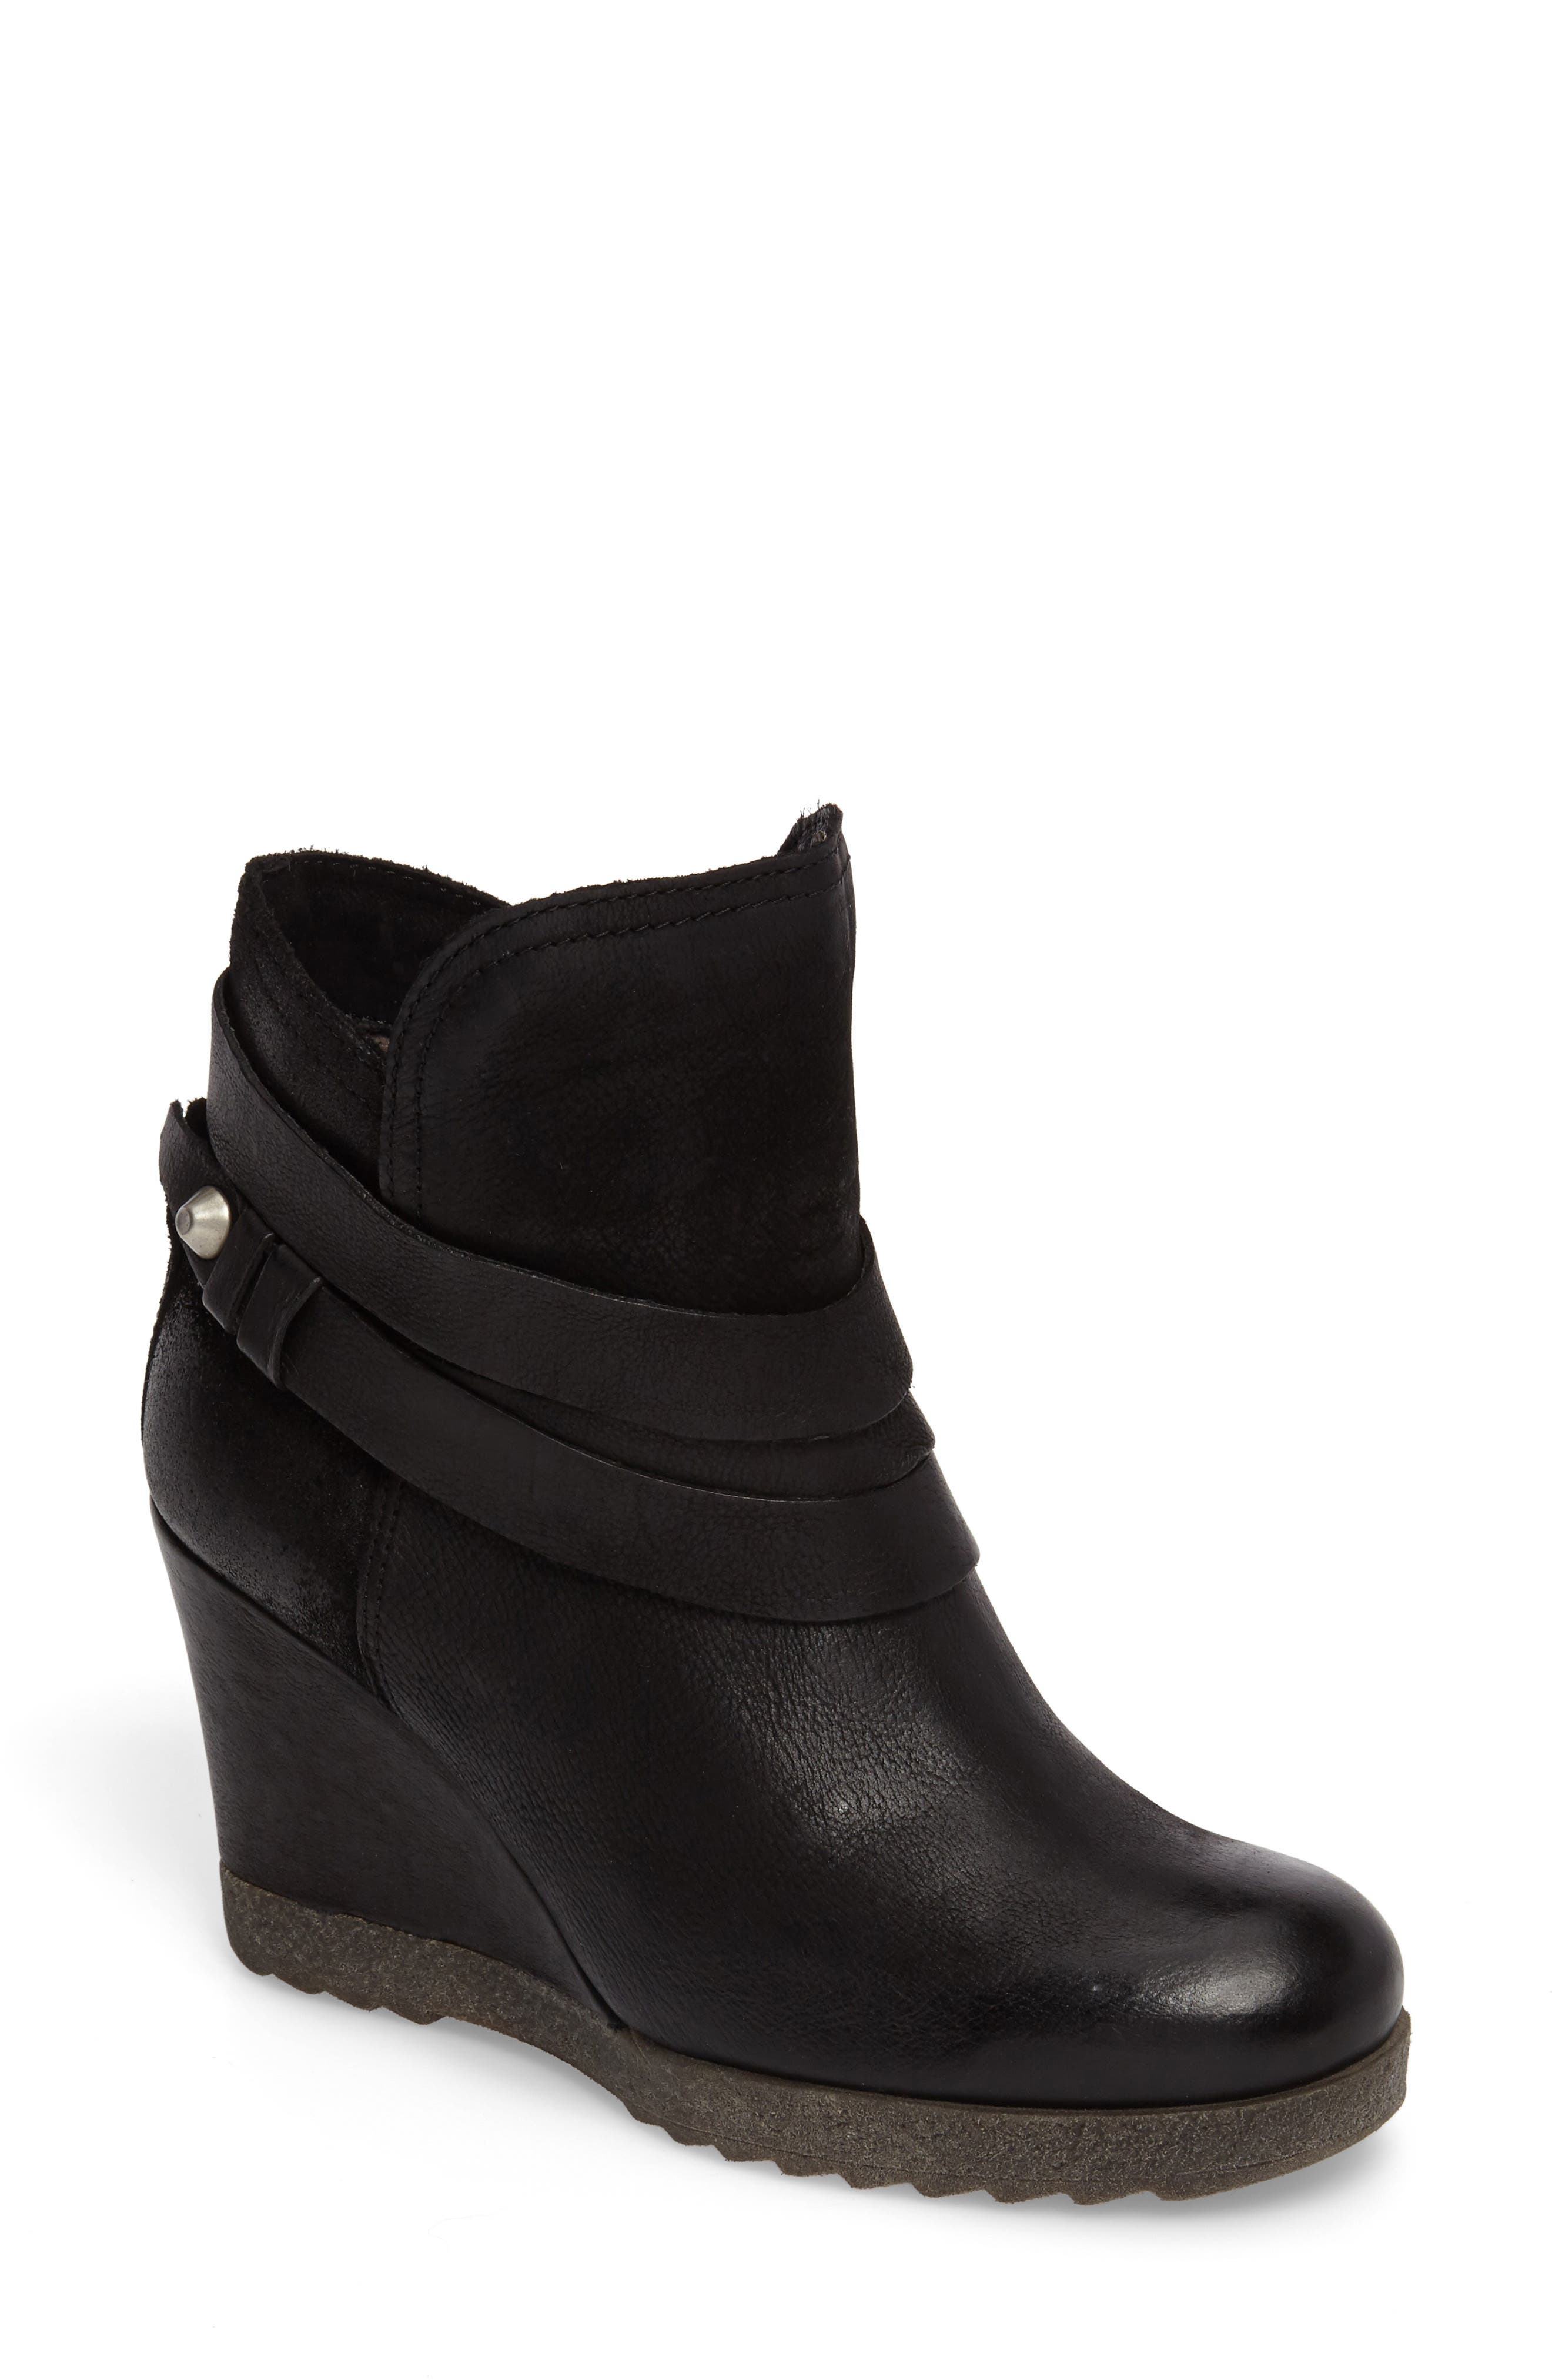 Narcissa Ankle Wrap Wedge Bootie,                             Main thumbnail 1, color,                             001